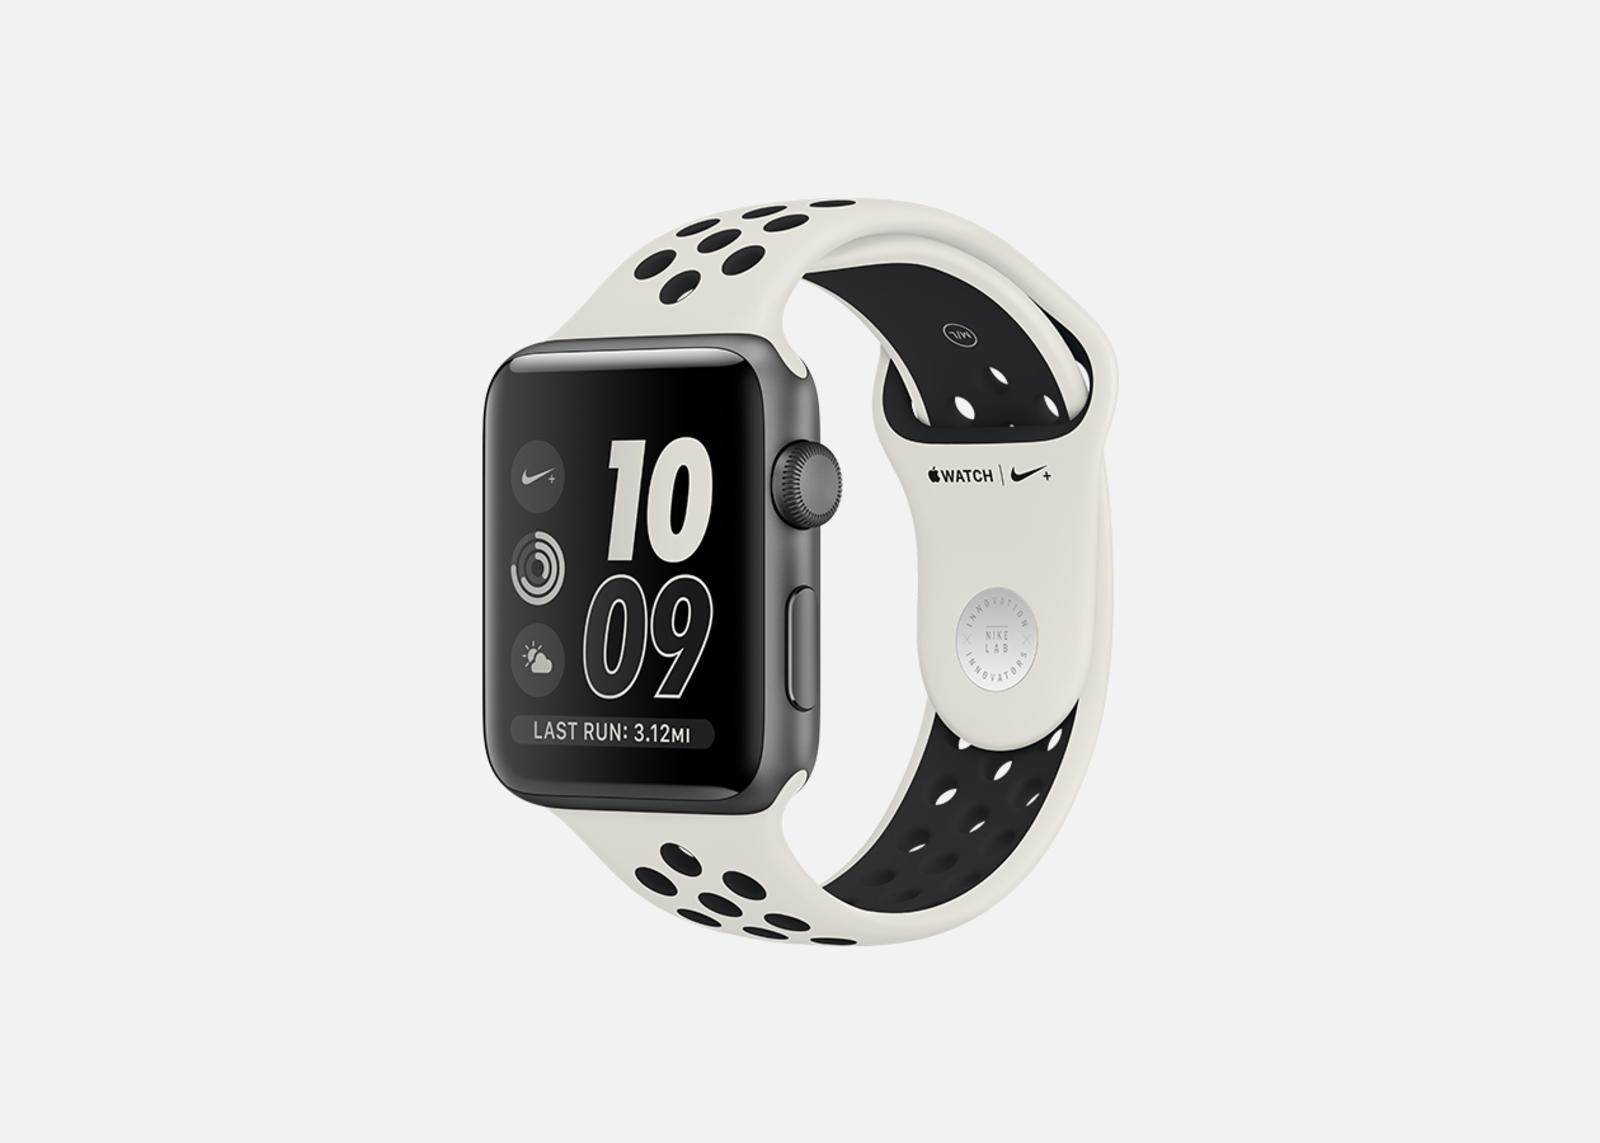 apple_watch_nikelab_1_rectangle_1600.jpg